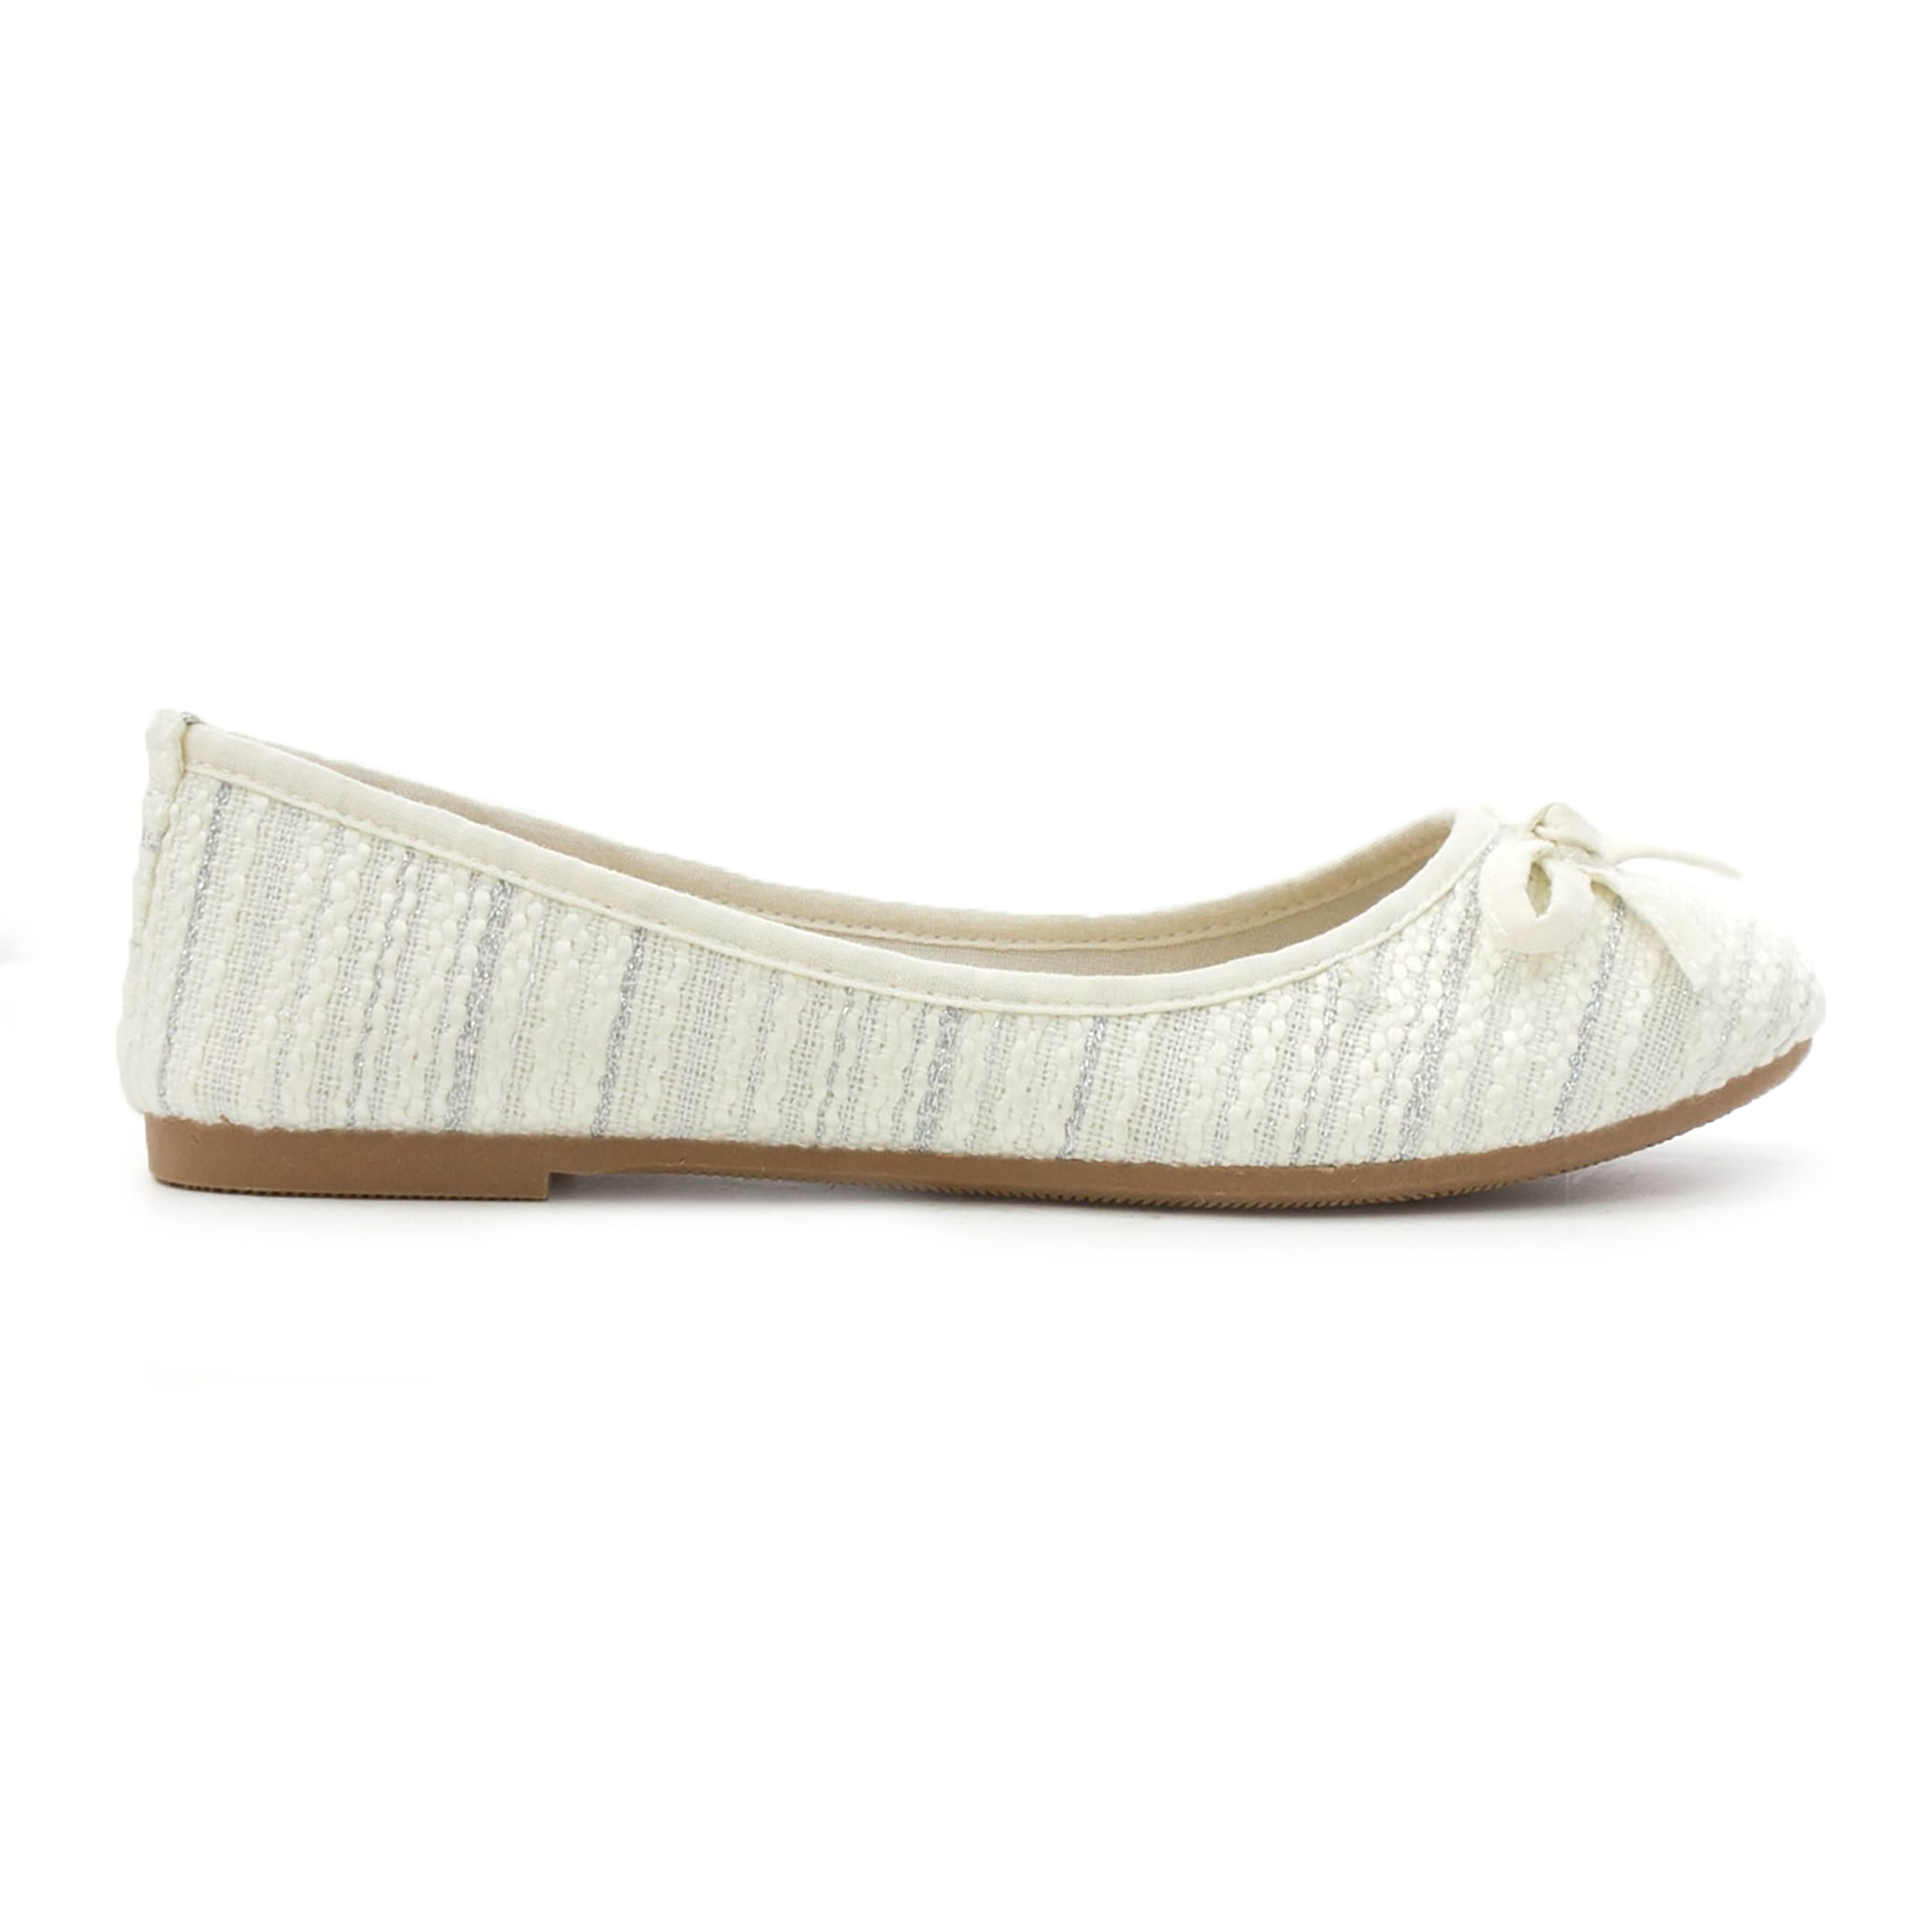 8e68427a7a870 Lilley Womens White Bow Knitted Effect Ballerina | SHOE ZONE | SS18 ...